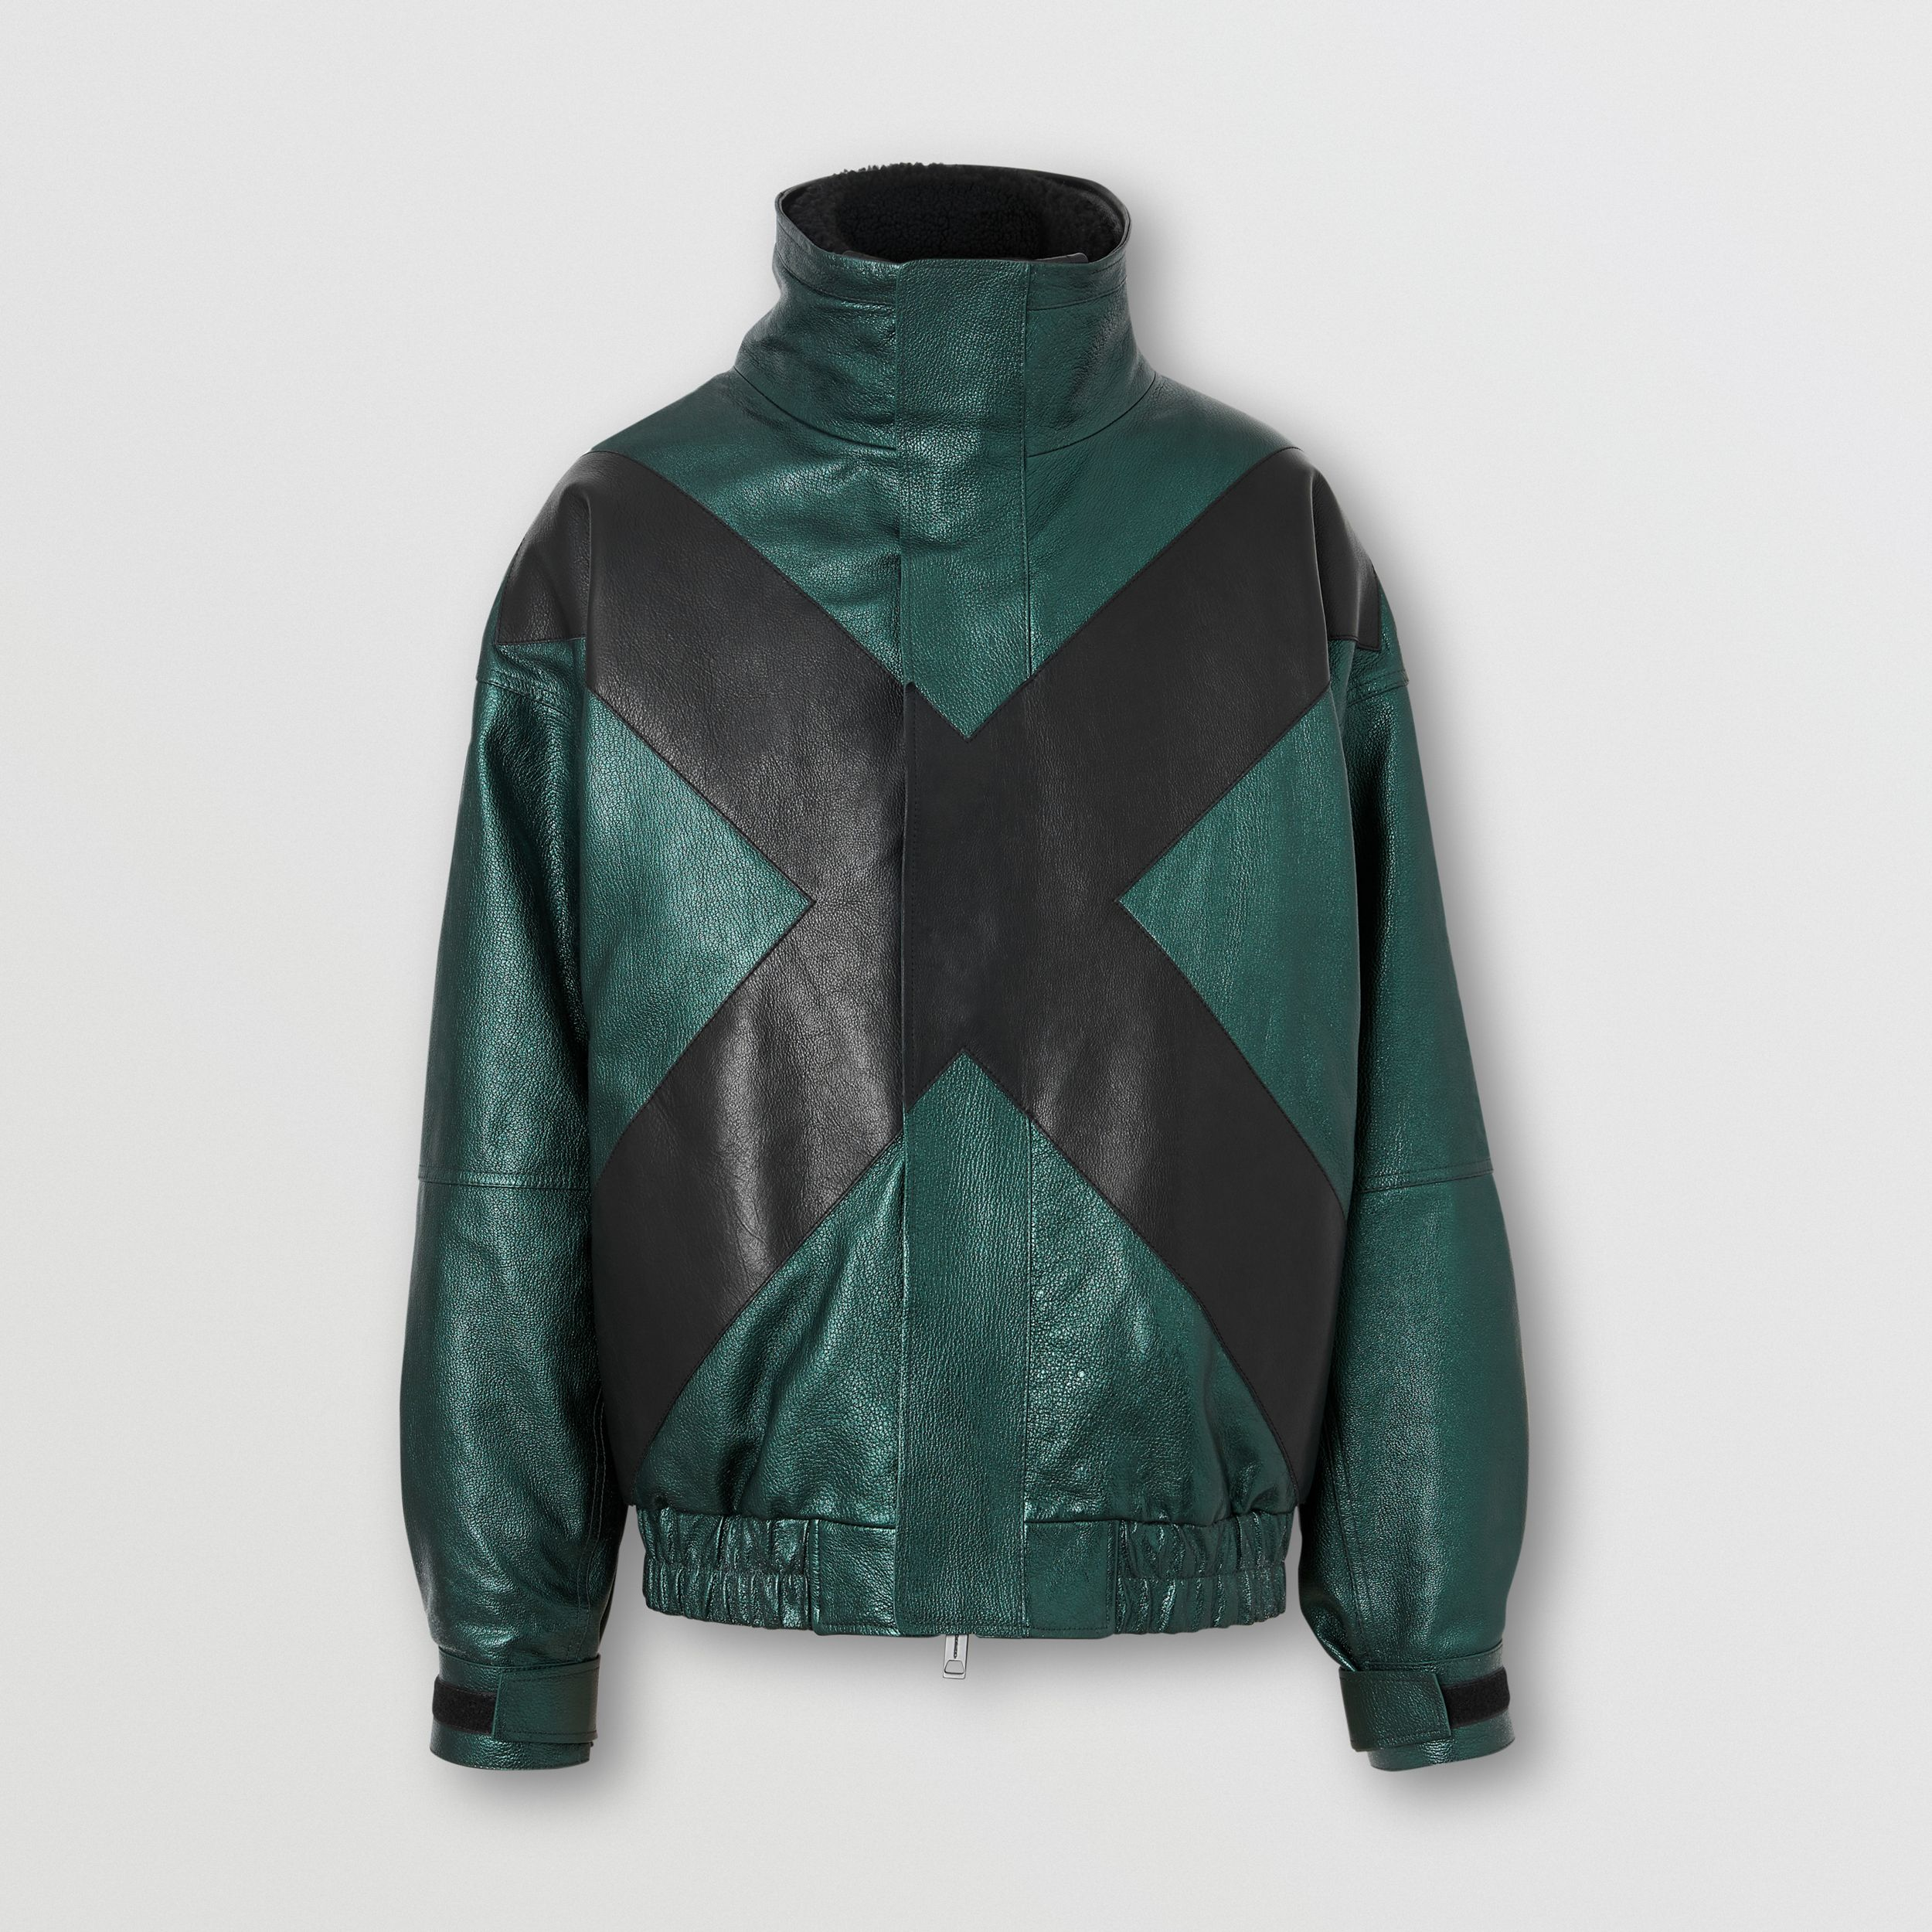 Metallic Leather Jacket with Detachable Warmer in Green - Men | Burberry - 4